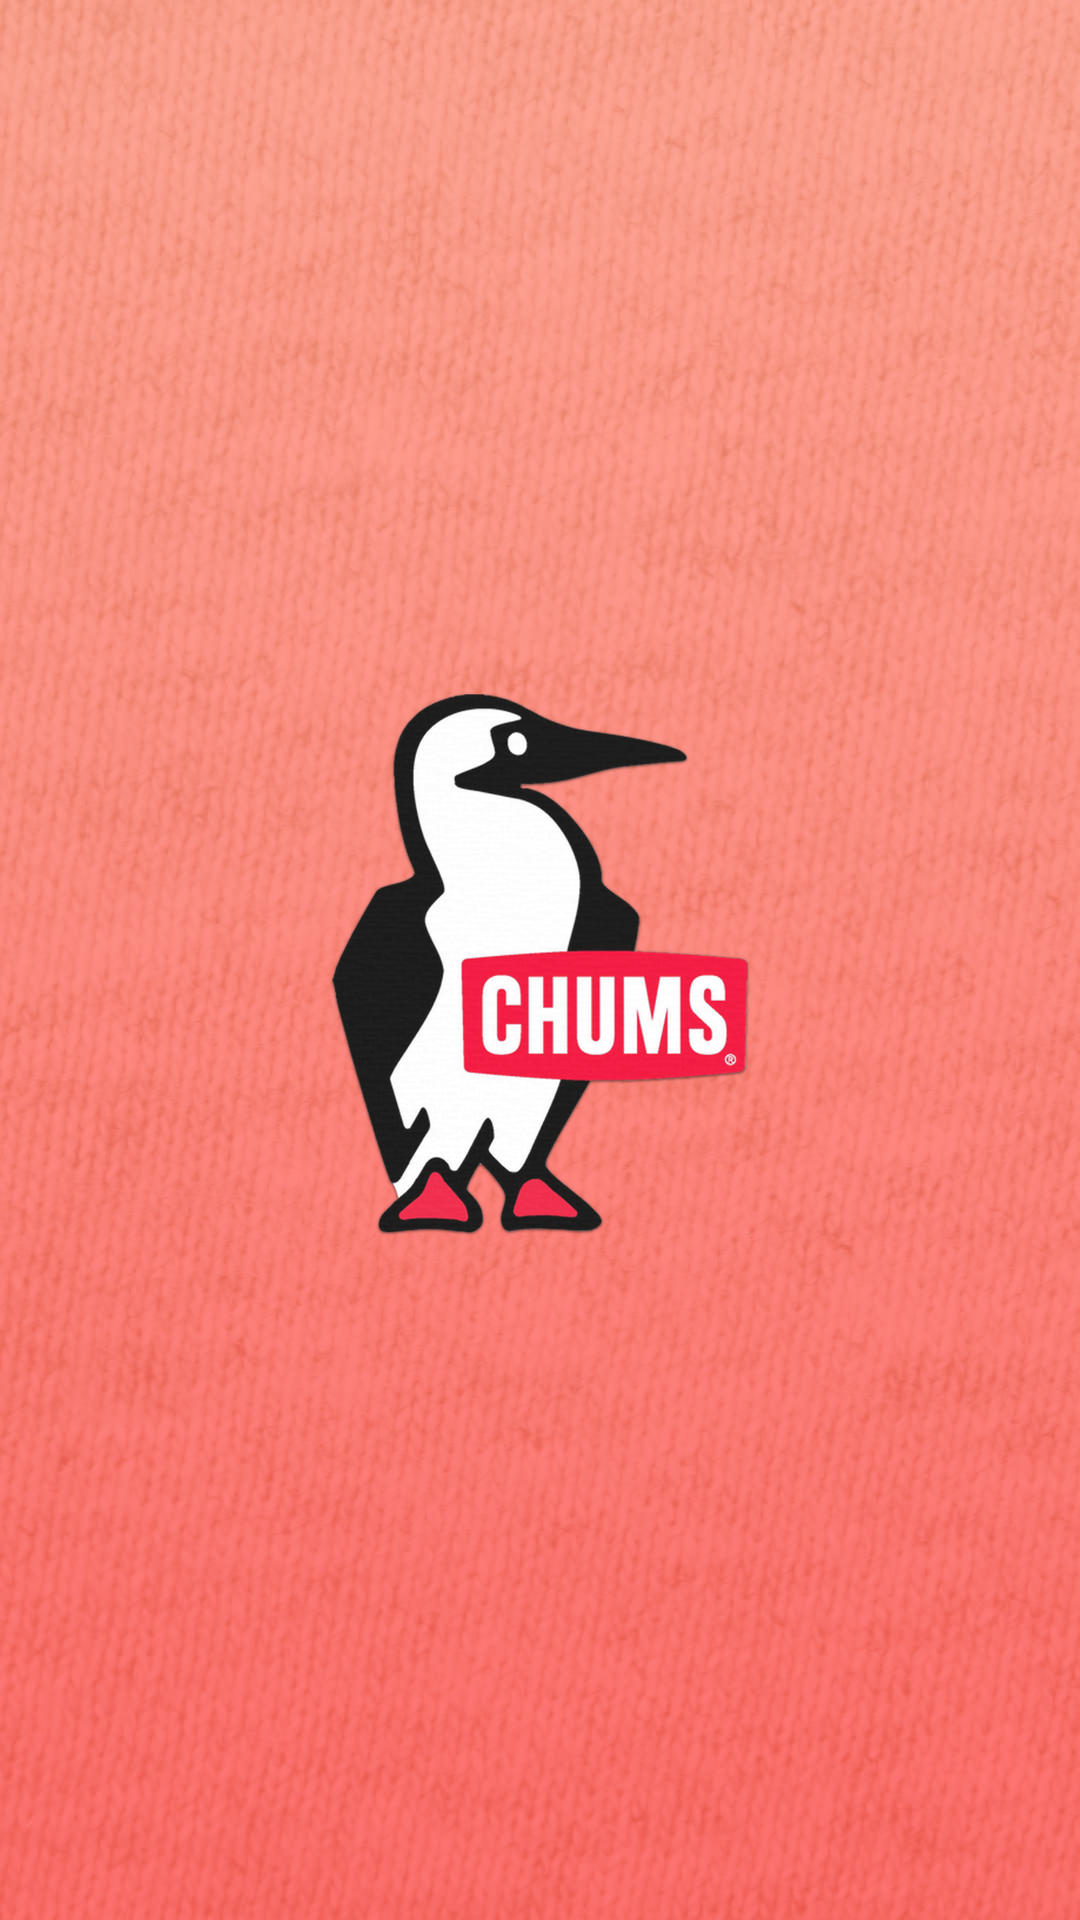 chums02 - 50 CHUMS HQ Smartphone Wallpaper Collection